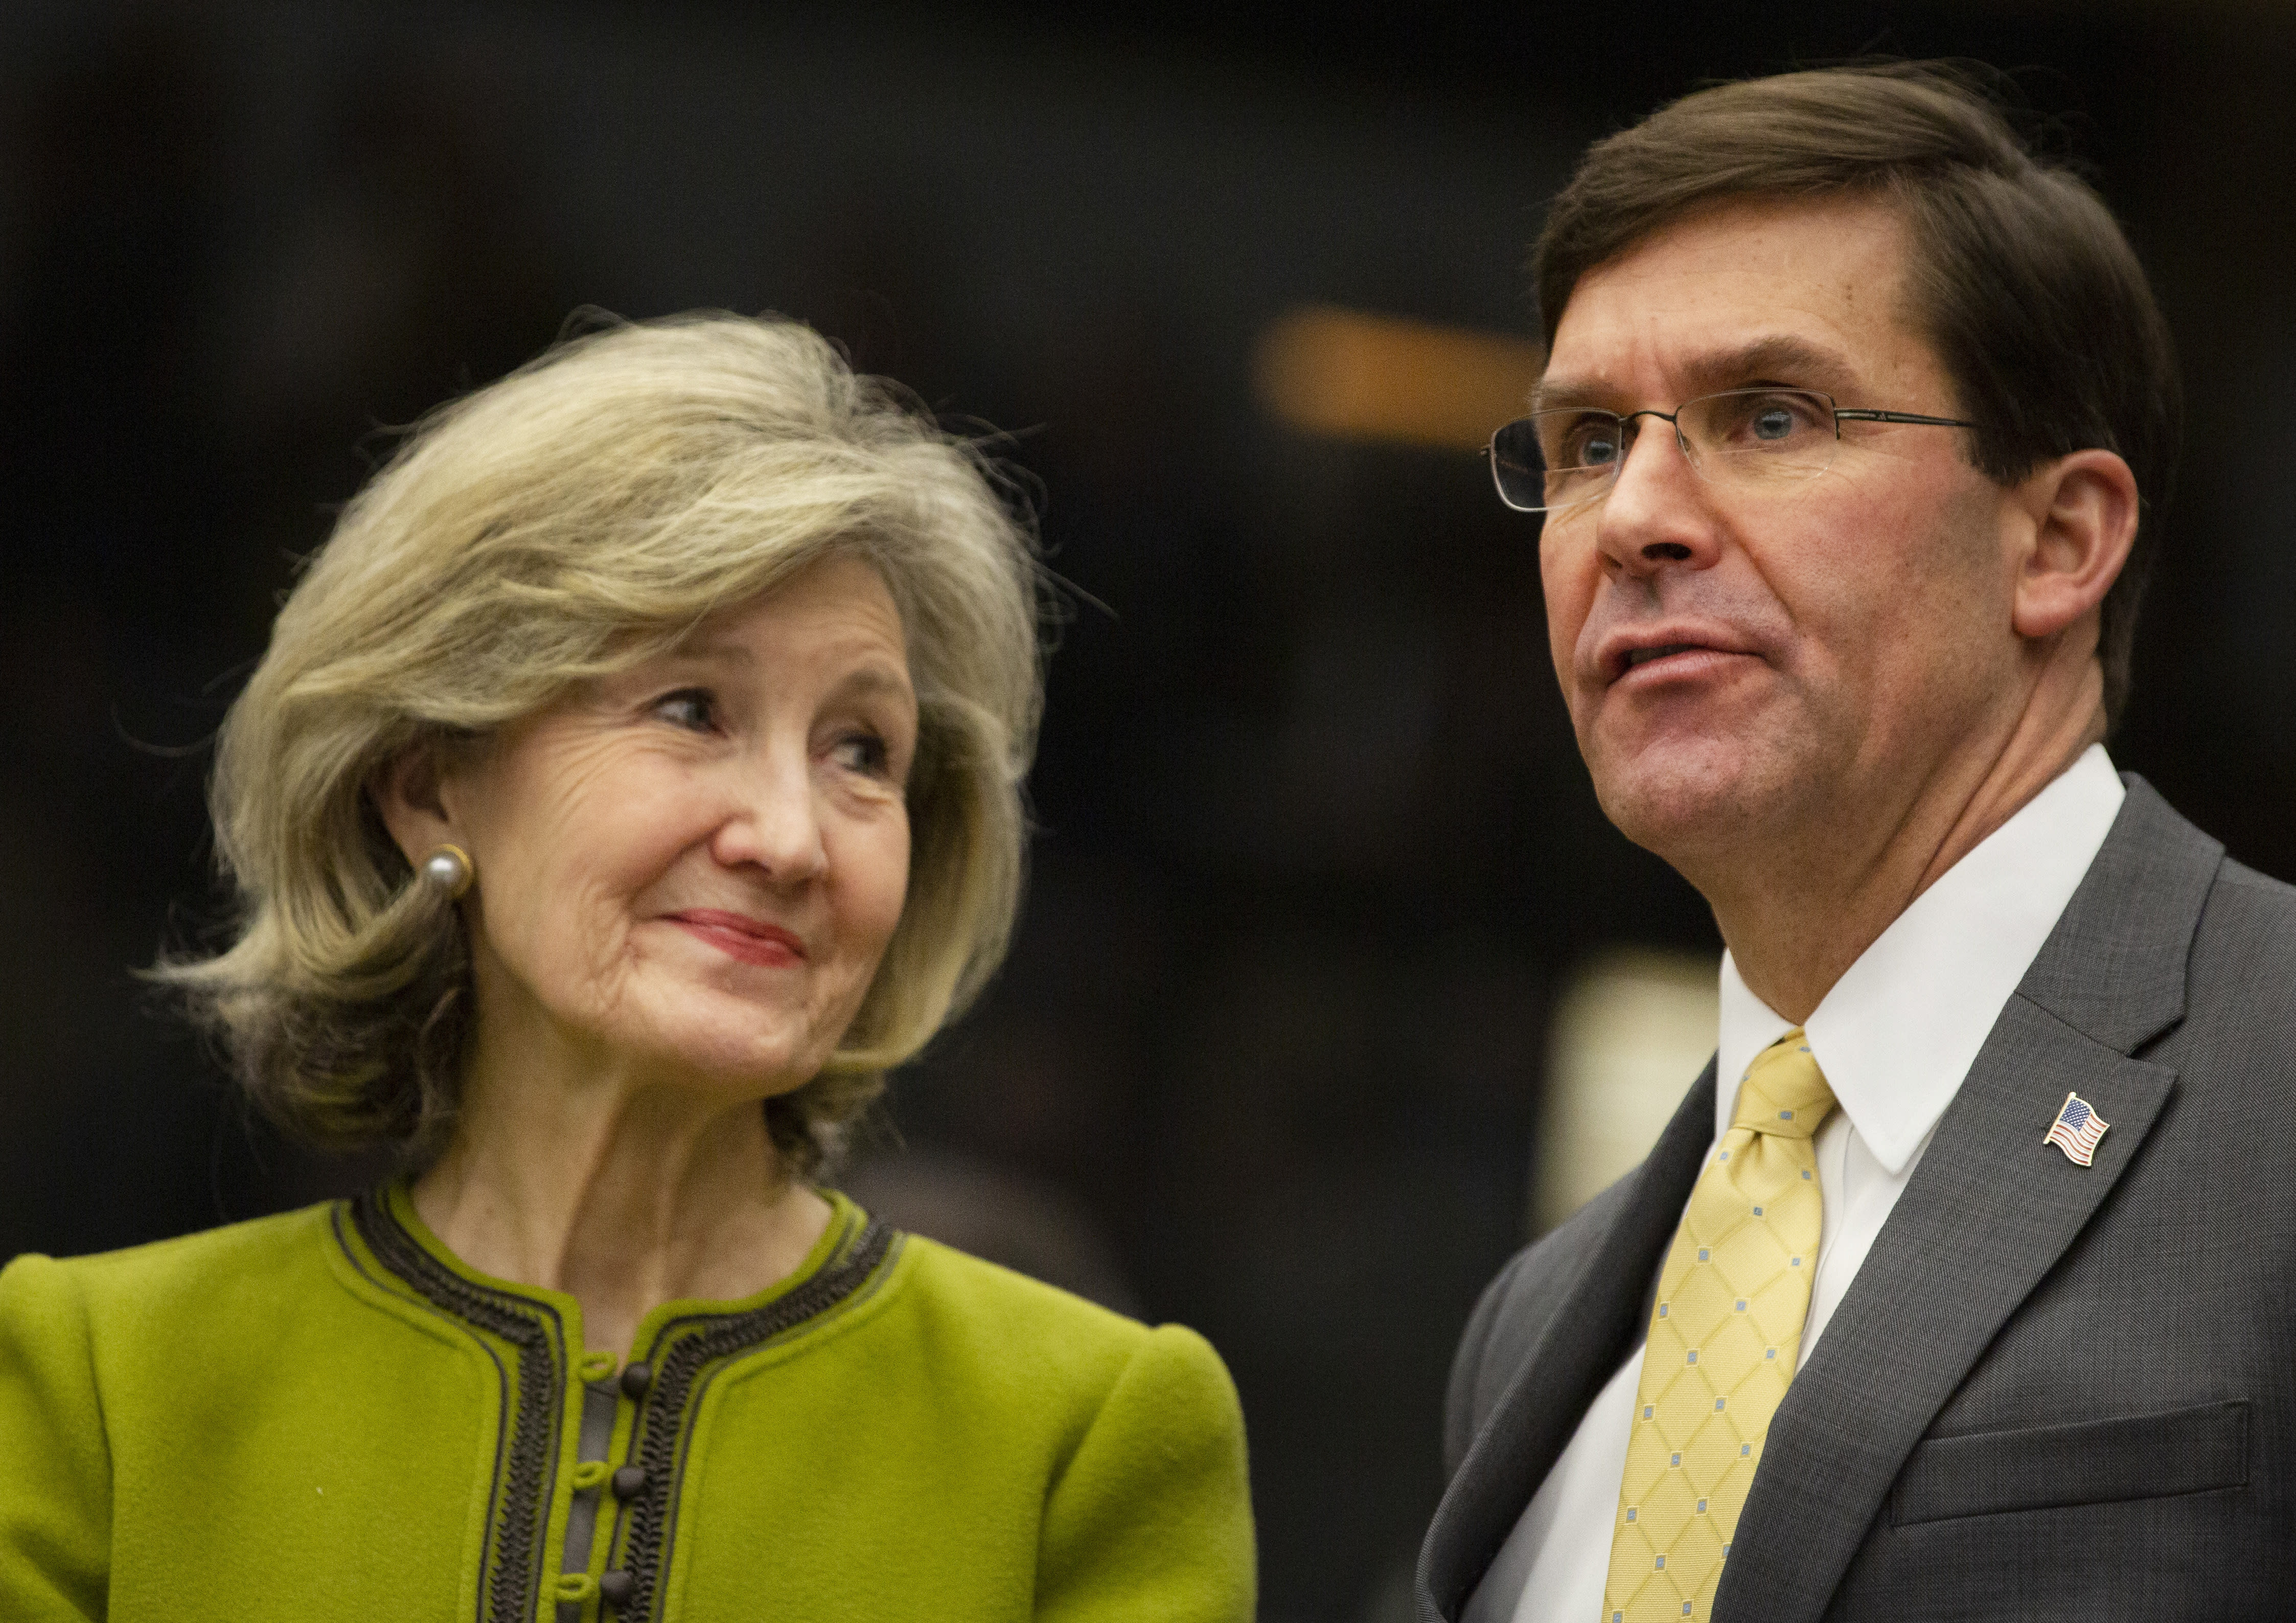 U.S. Secretary for Defense Mark Esper, right, speaks with U.S. Ambassador to NATO Kay Bailey Hutchison during a meeting of the Resolute Support Mission at NATO headquarters in Brussels, Thursday, Feb. 13, 2020. NATO ministers, in a second day of meetings, will discuss building stability in the Middle East, the Alliance's support for Afghanistan and challenges posed by Russia's missile systems. (AP Photo/Virginia Mayo)